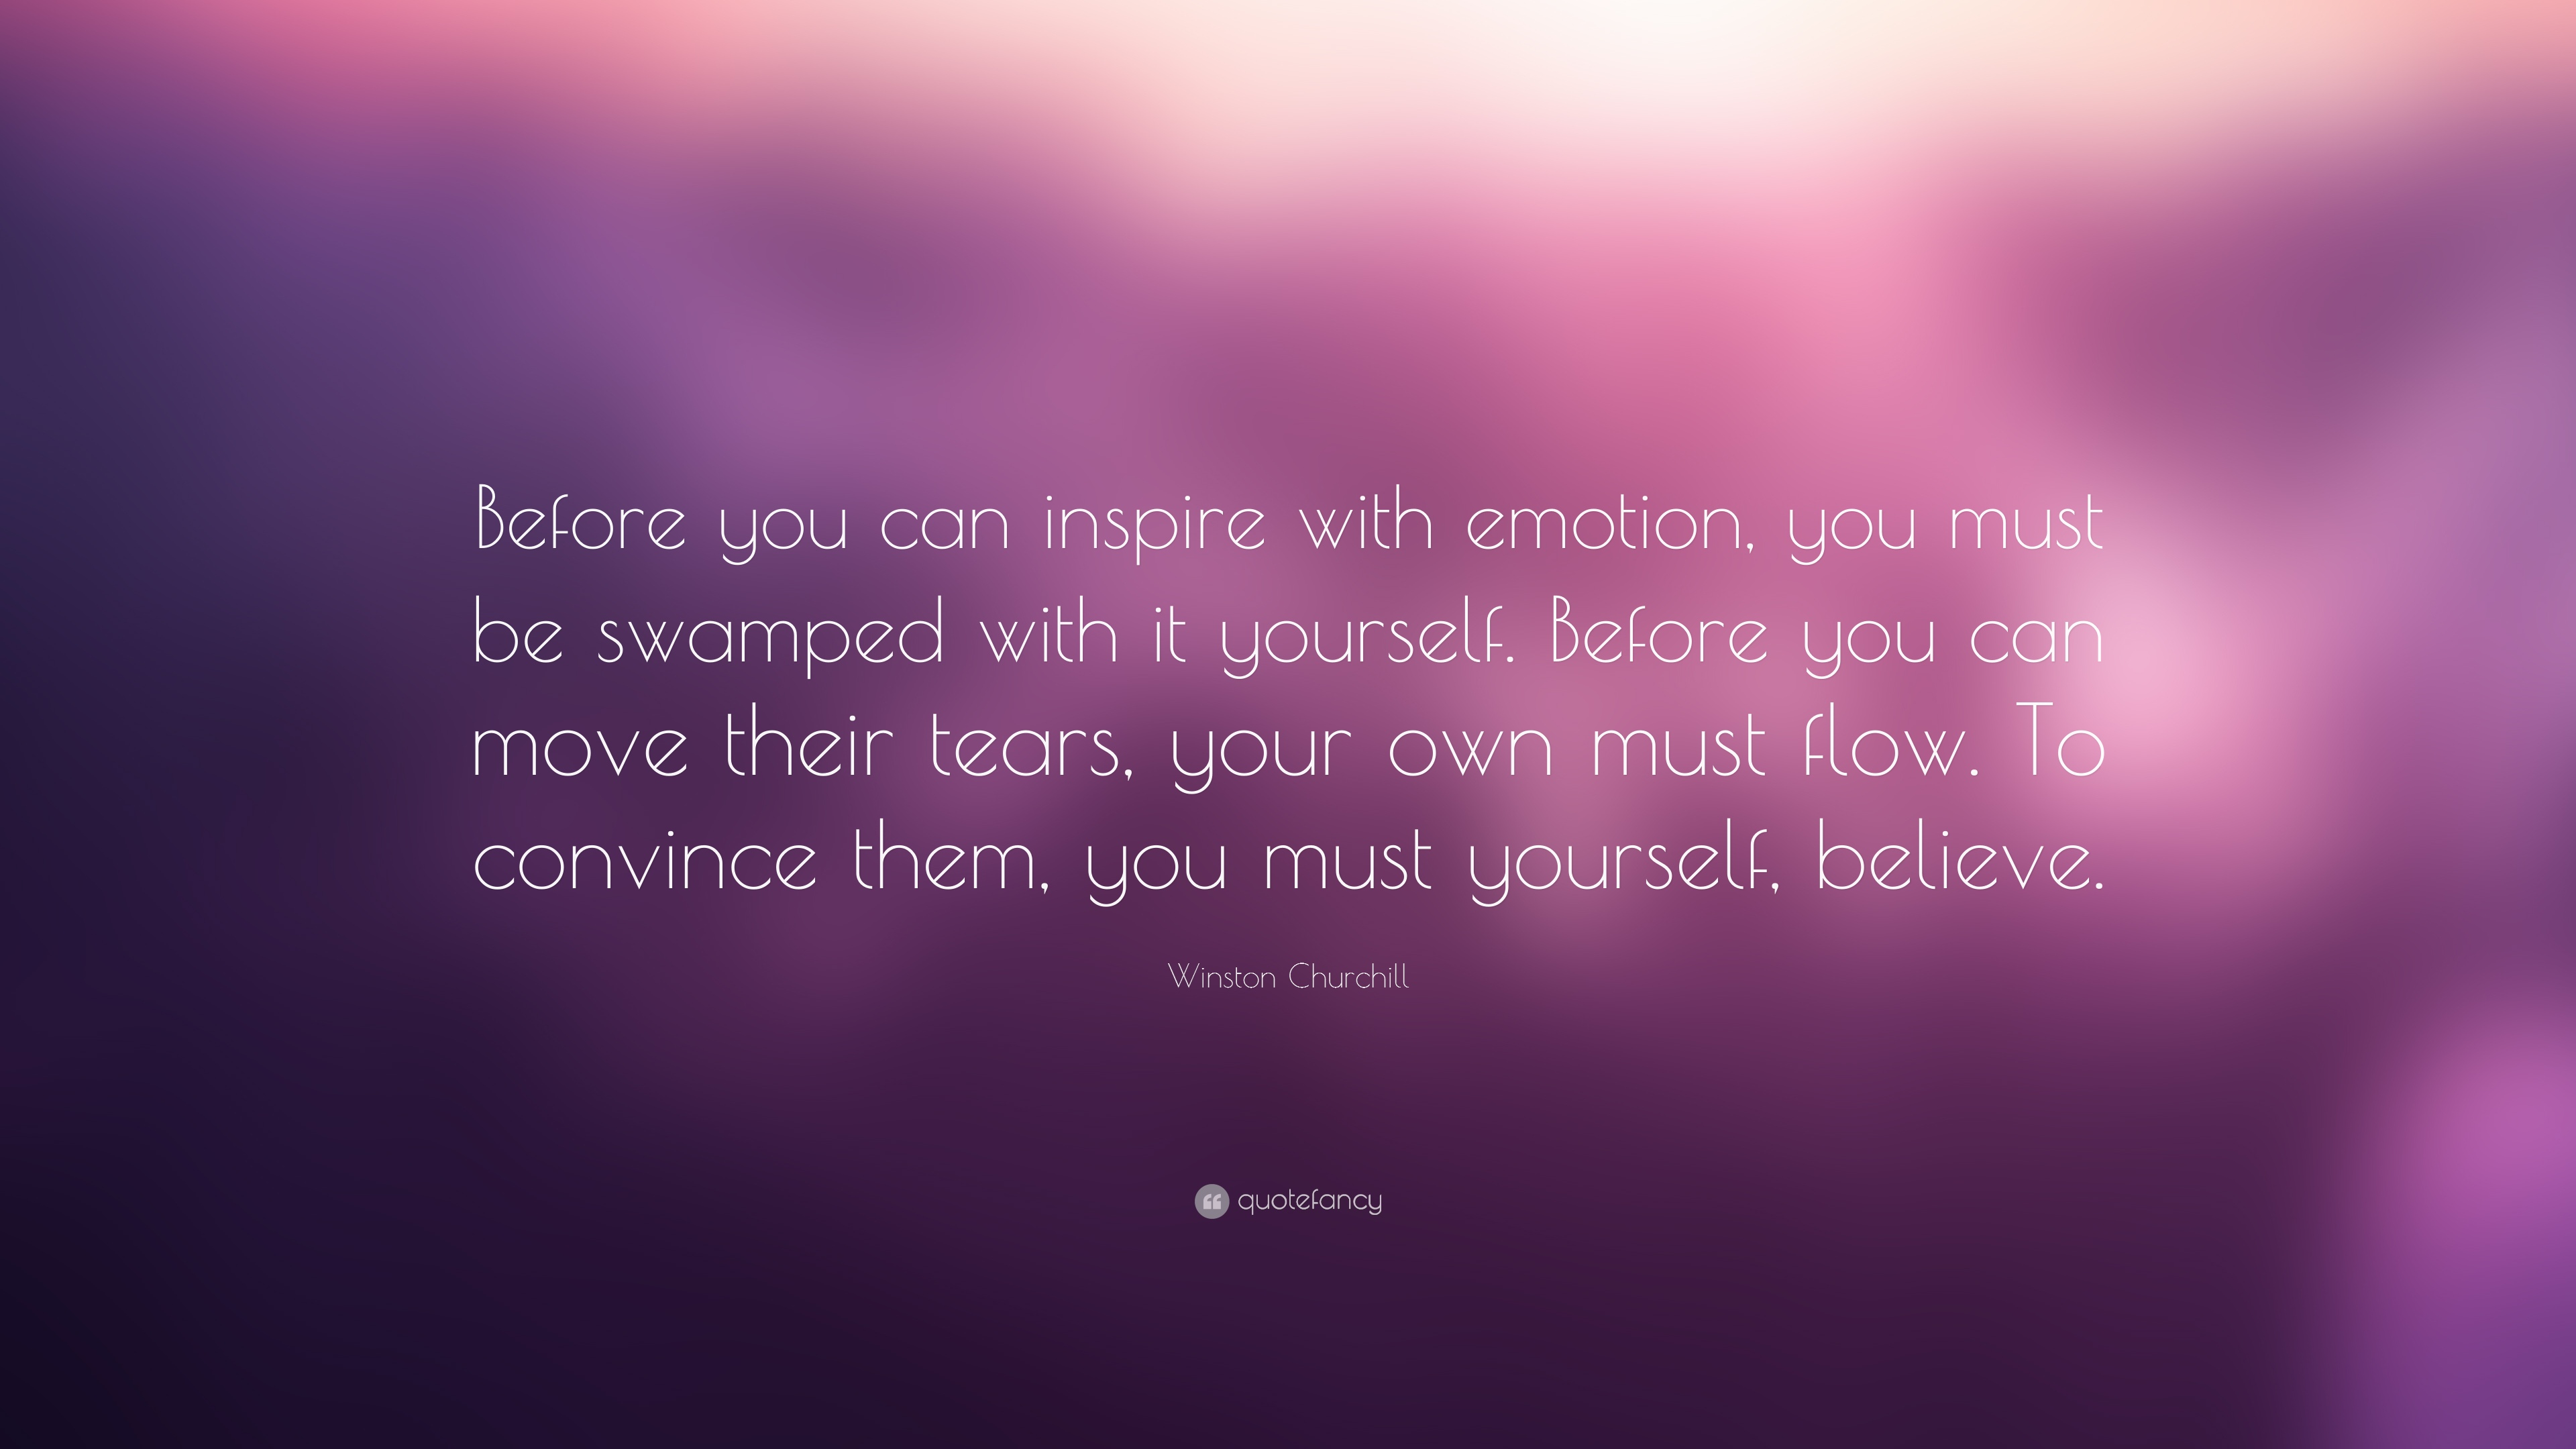 Winston Churchill Inspire Before You Can Emotion